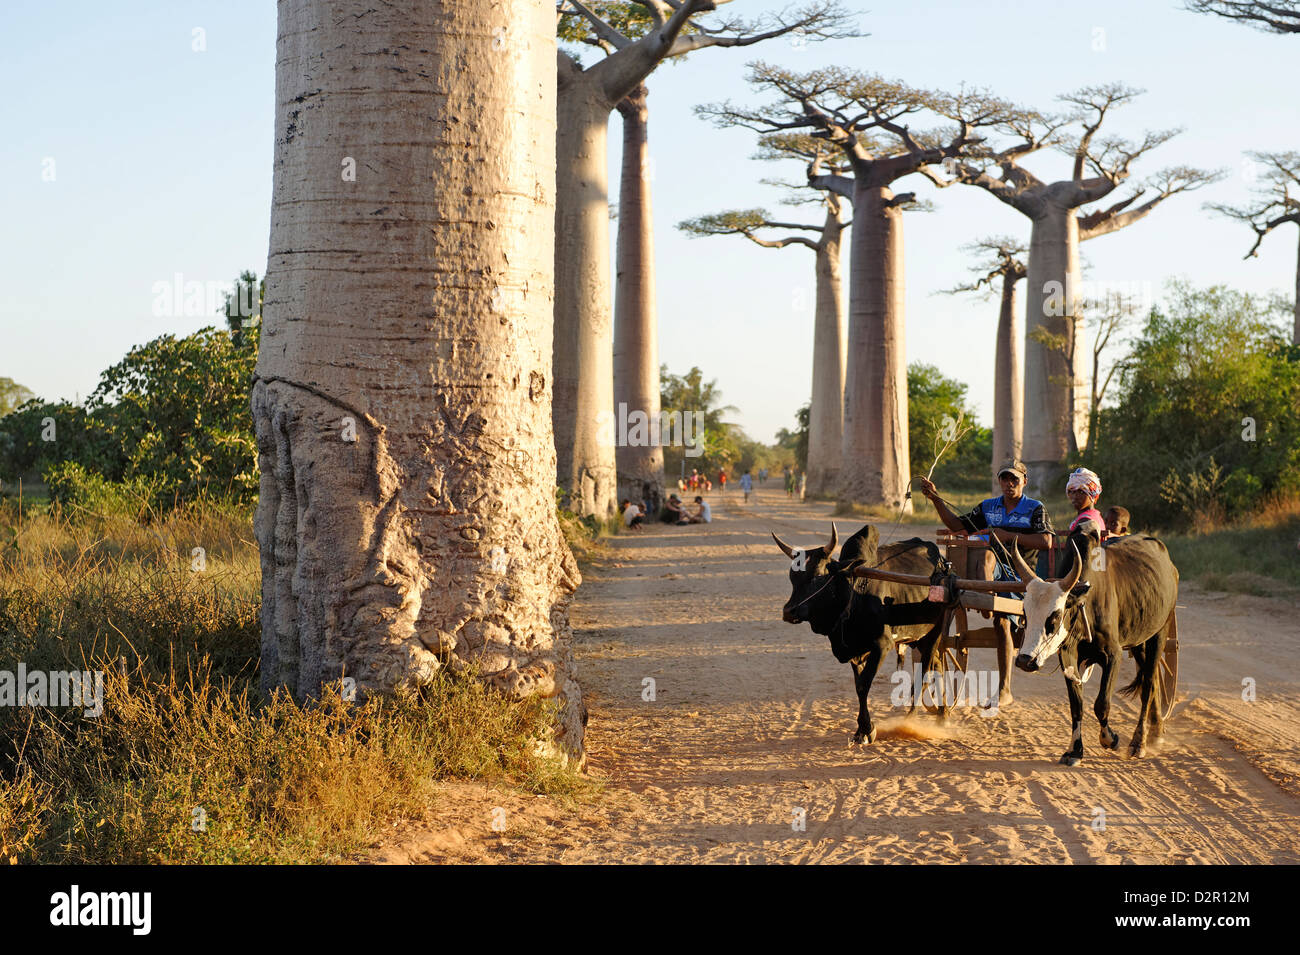 The Alley of the Baobabs, a group of baobab trees lining the road between Morondava and Belon'i Tsiribihina, - Stock Image